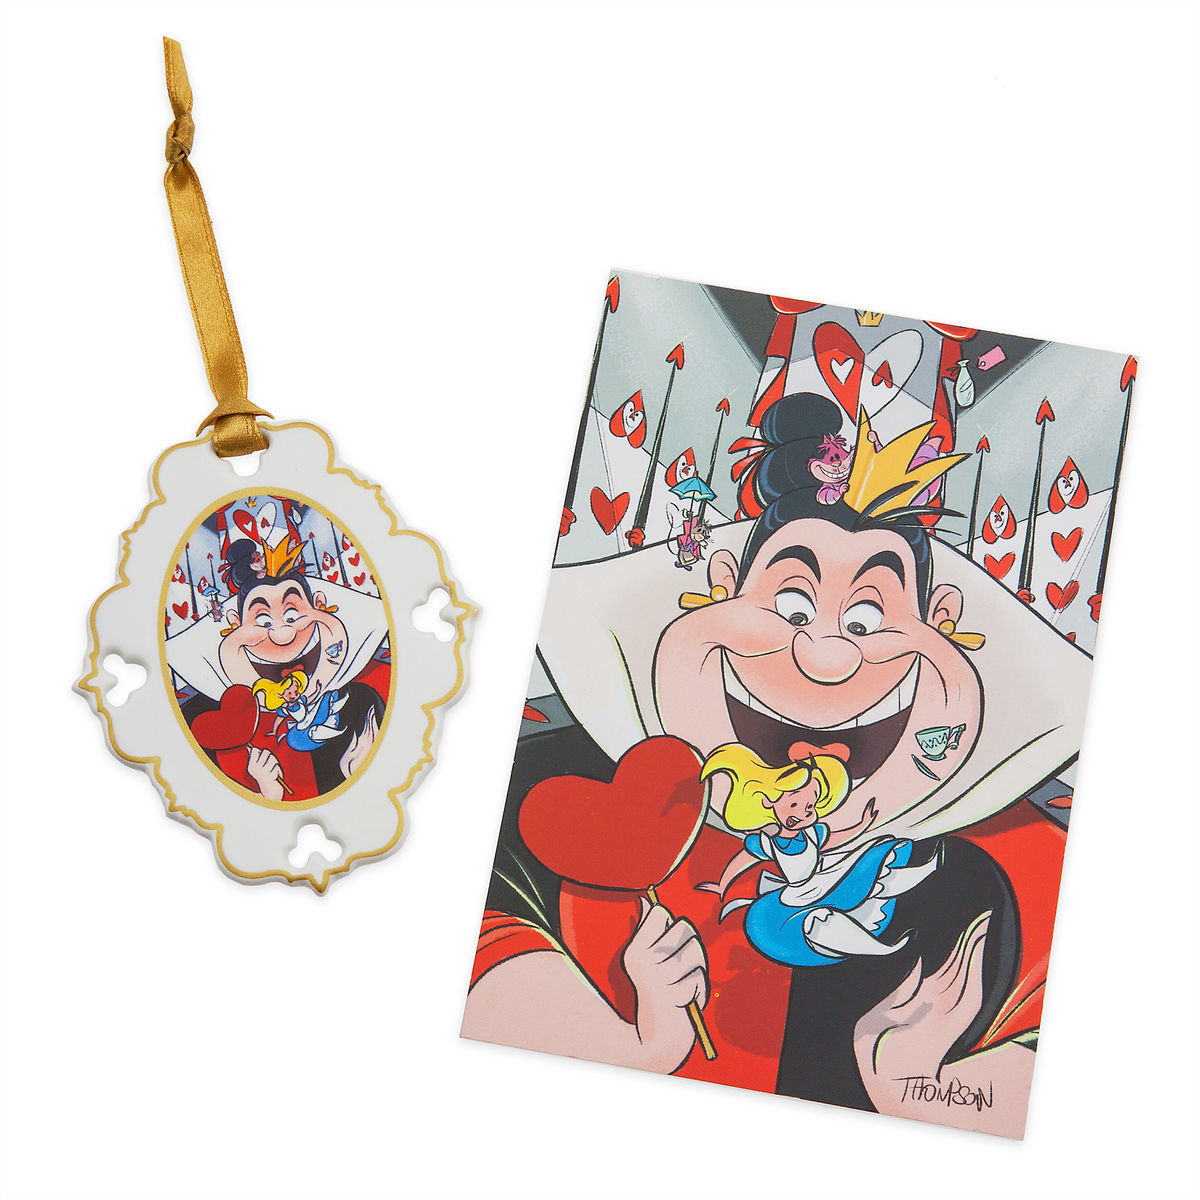 Thumbnail Image of Alice in Wonderland Artist Series Sketchbook Ornament and Lithograph Set - Limited Edition # 1